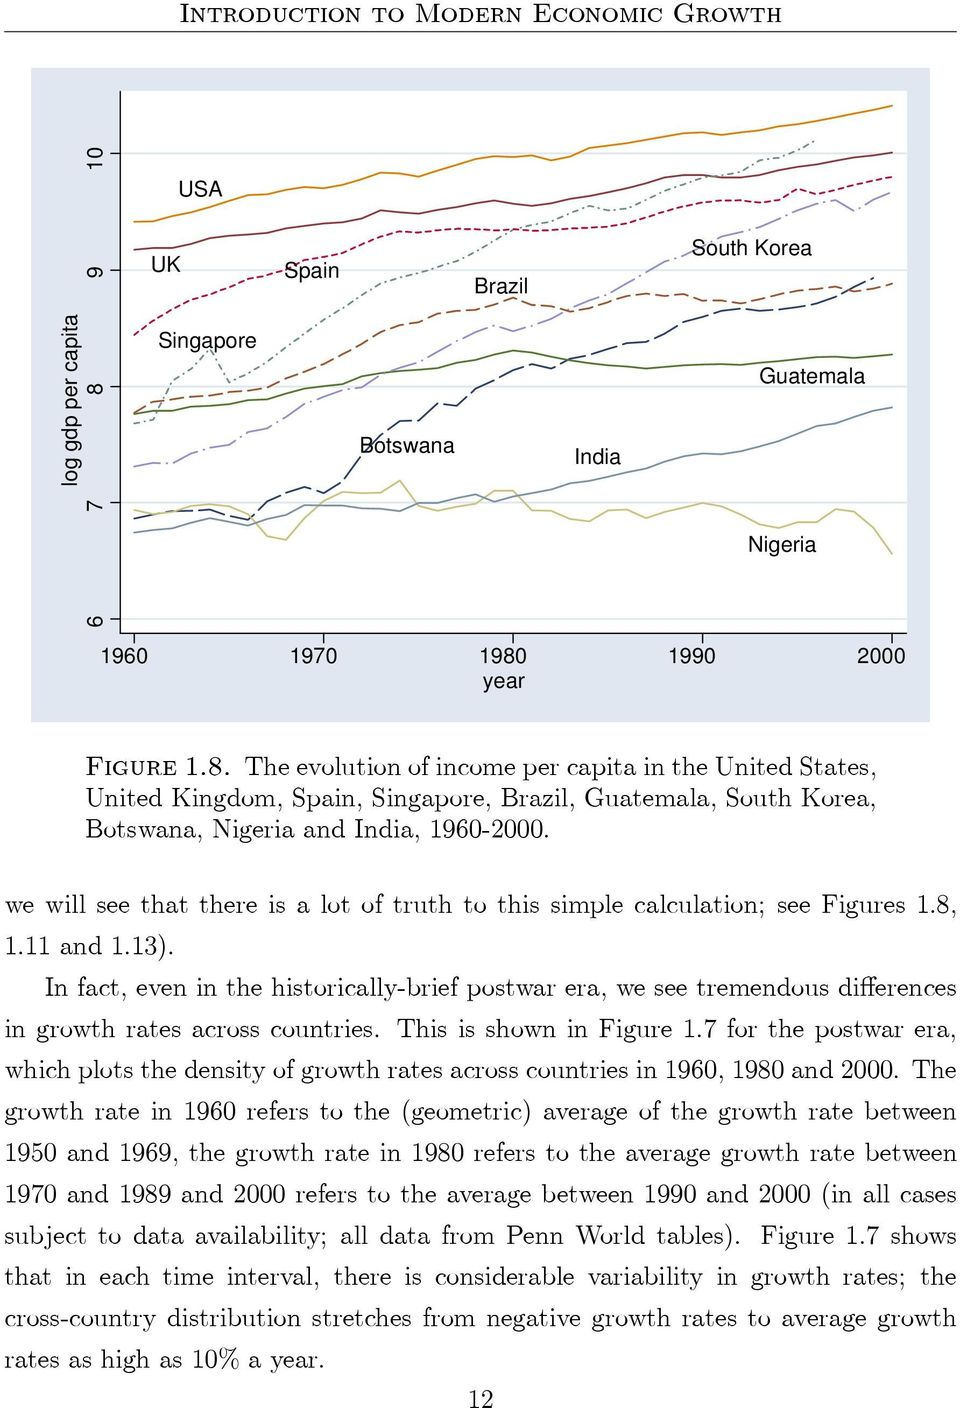 In fact, even in the historically-brief postwar era, we see tremendous differences in growth rates across countries. This is shown in Figure 1.